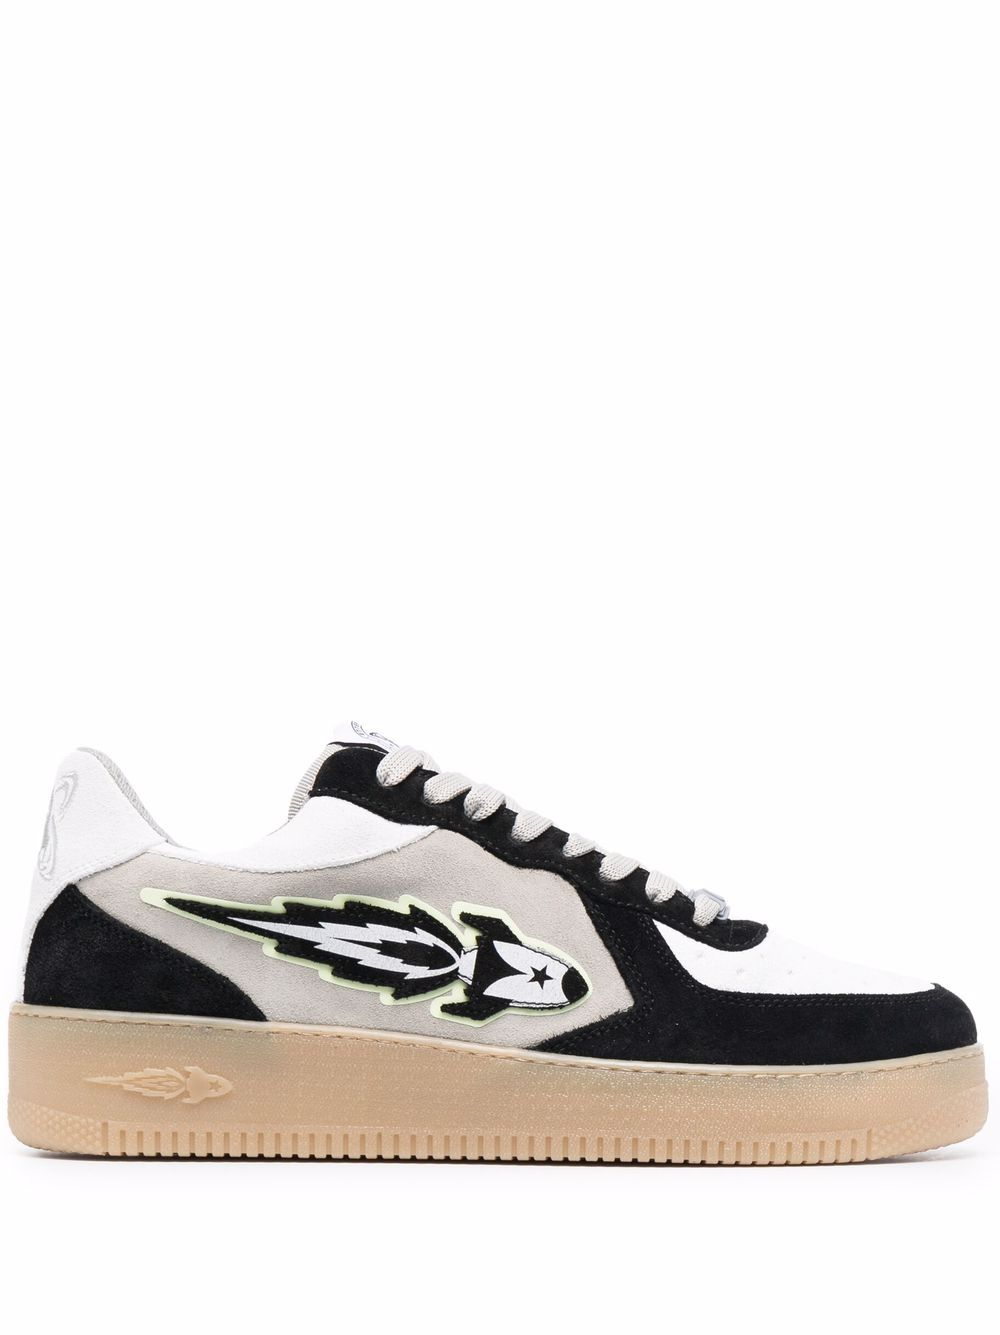 Picture of Enterprise Japan   Rocket Patch Lace-Up Sneakers